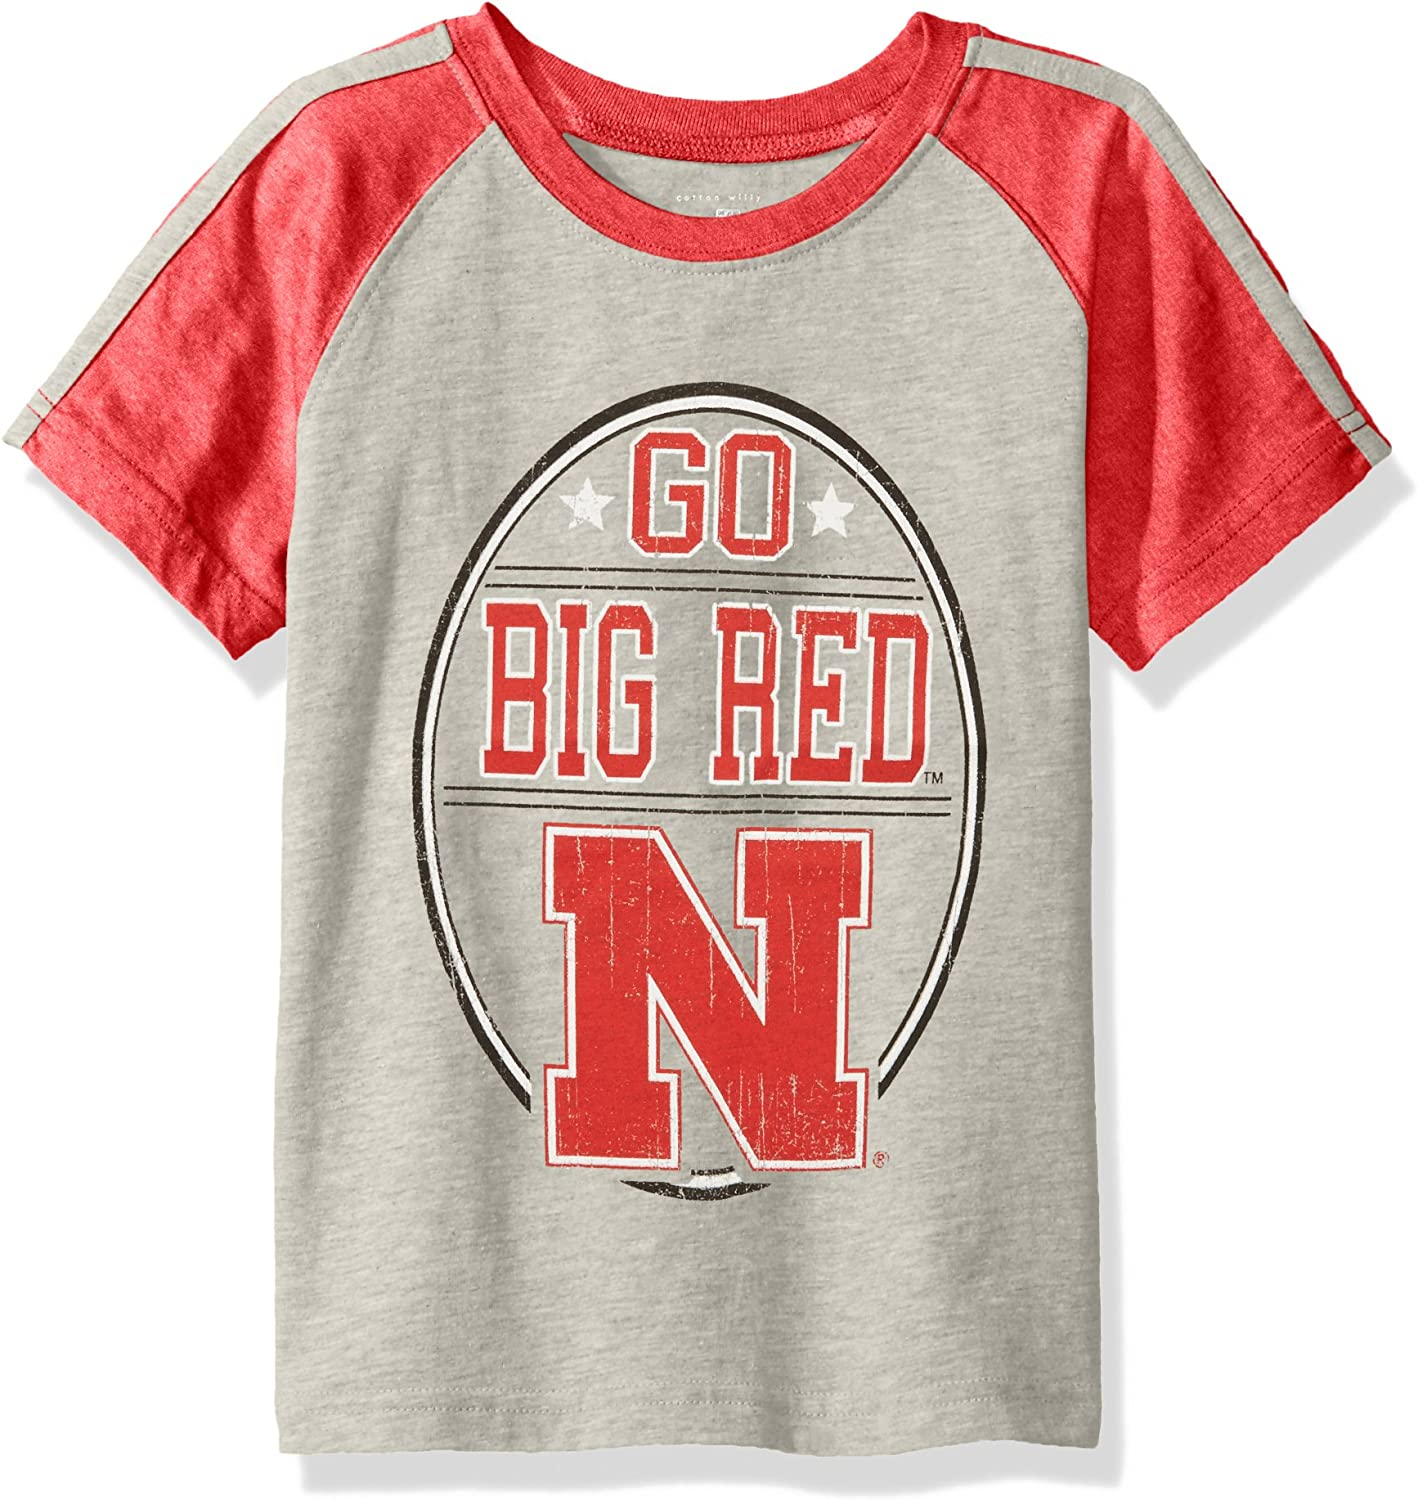 NCAA Boys Raglan Short Sleeve Stripe Tee,Nebraska Cornhuskers,Red,M